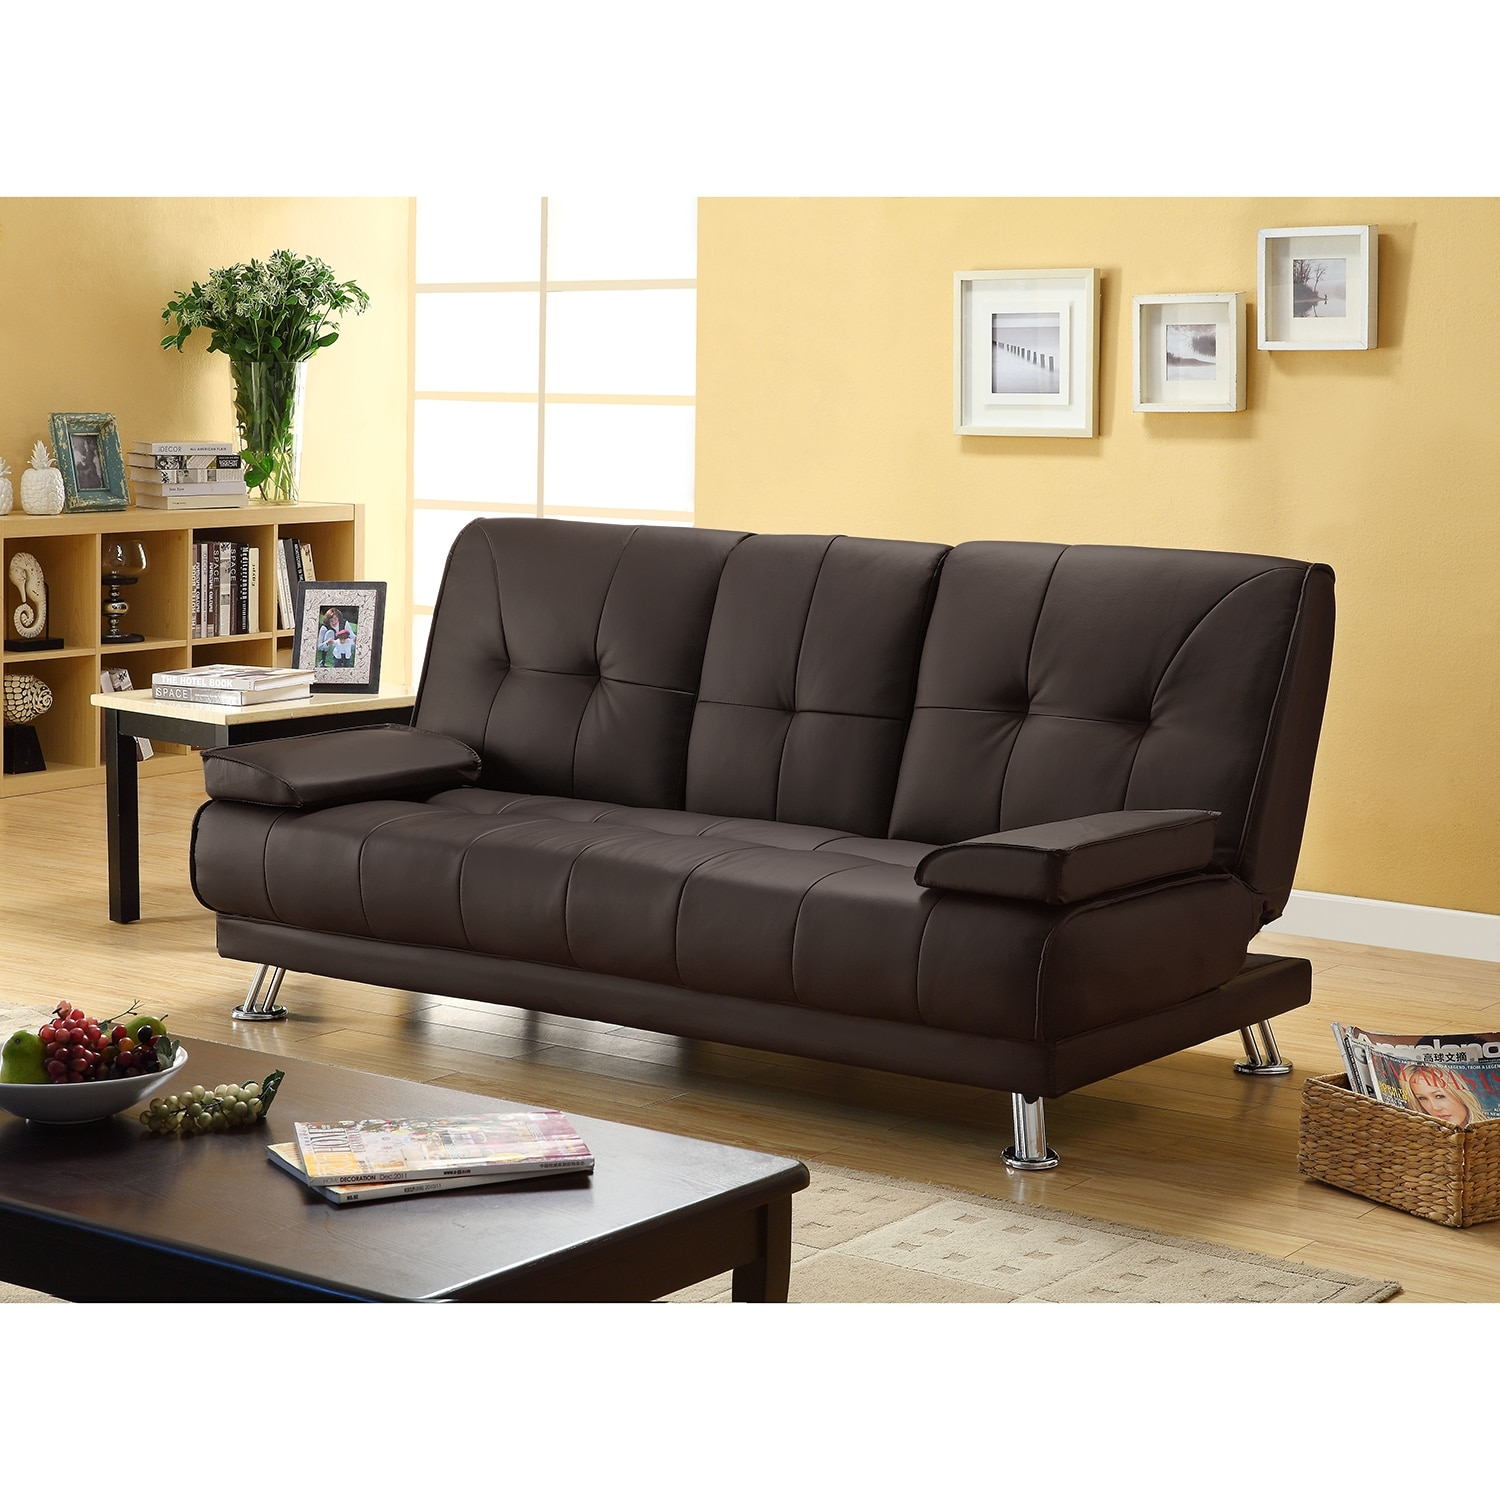 julia cupholder convertible futon sofa bed white to go canberra black leather with cup holders